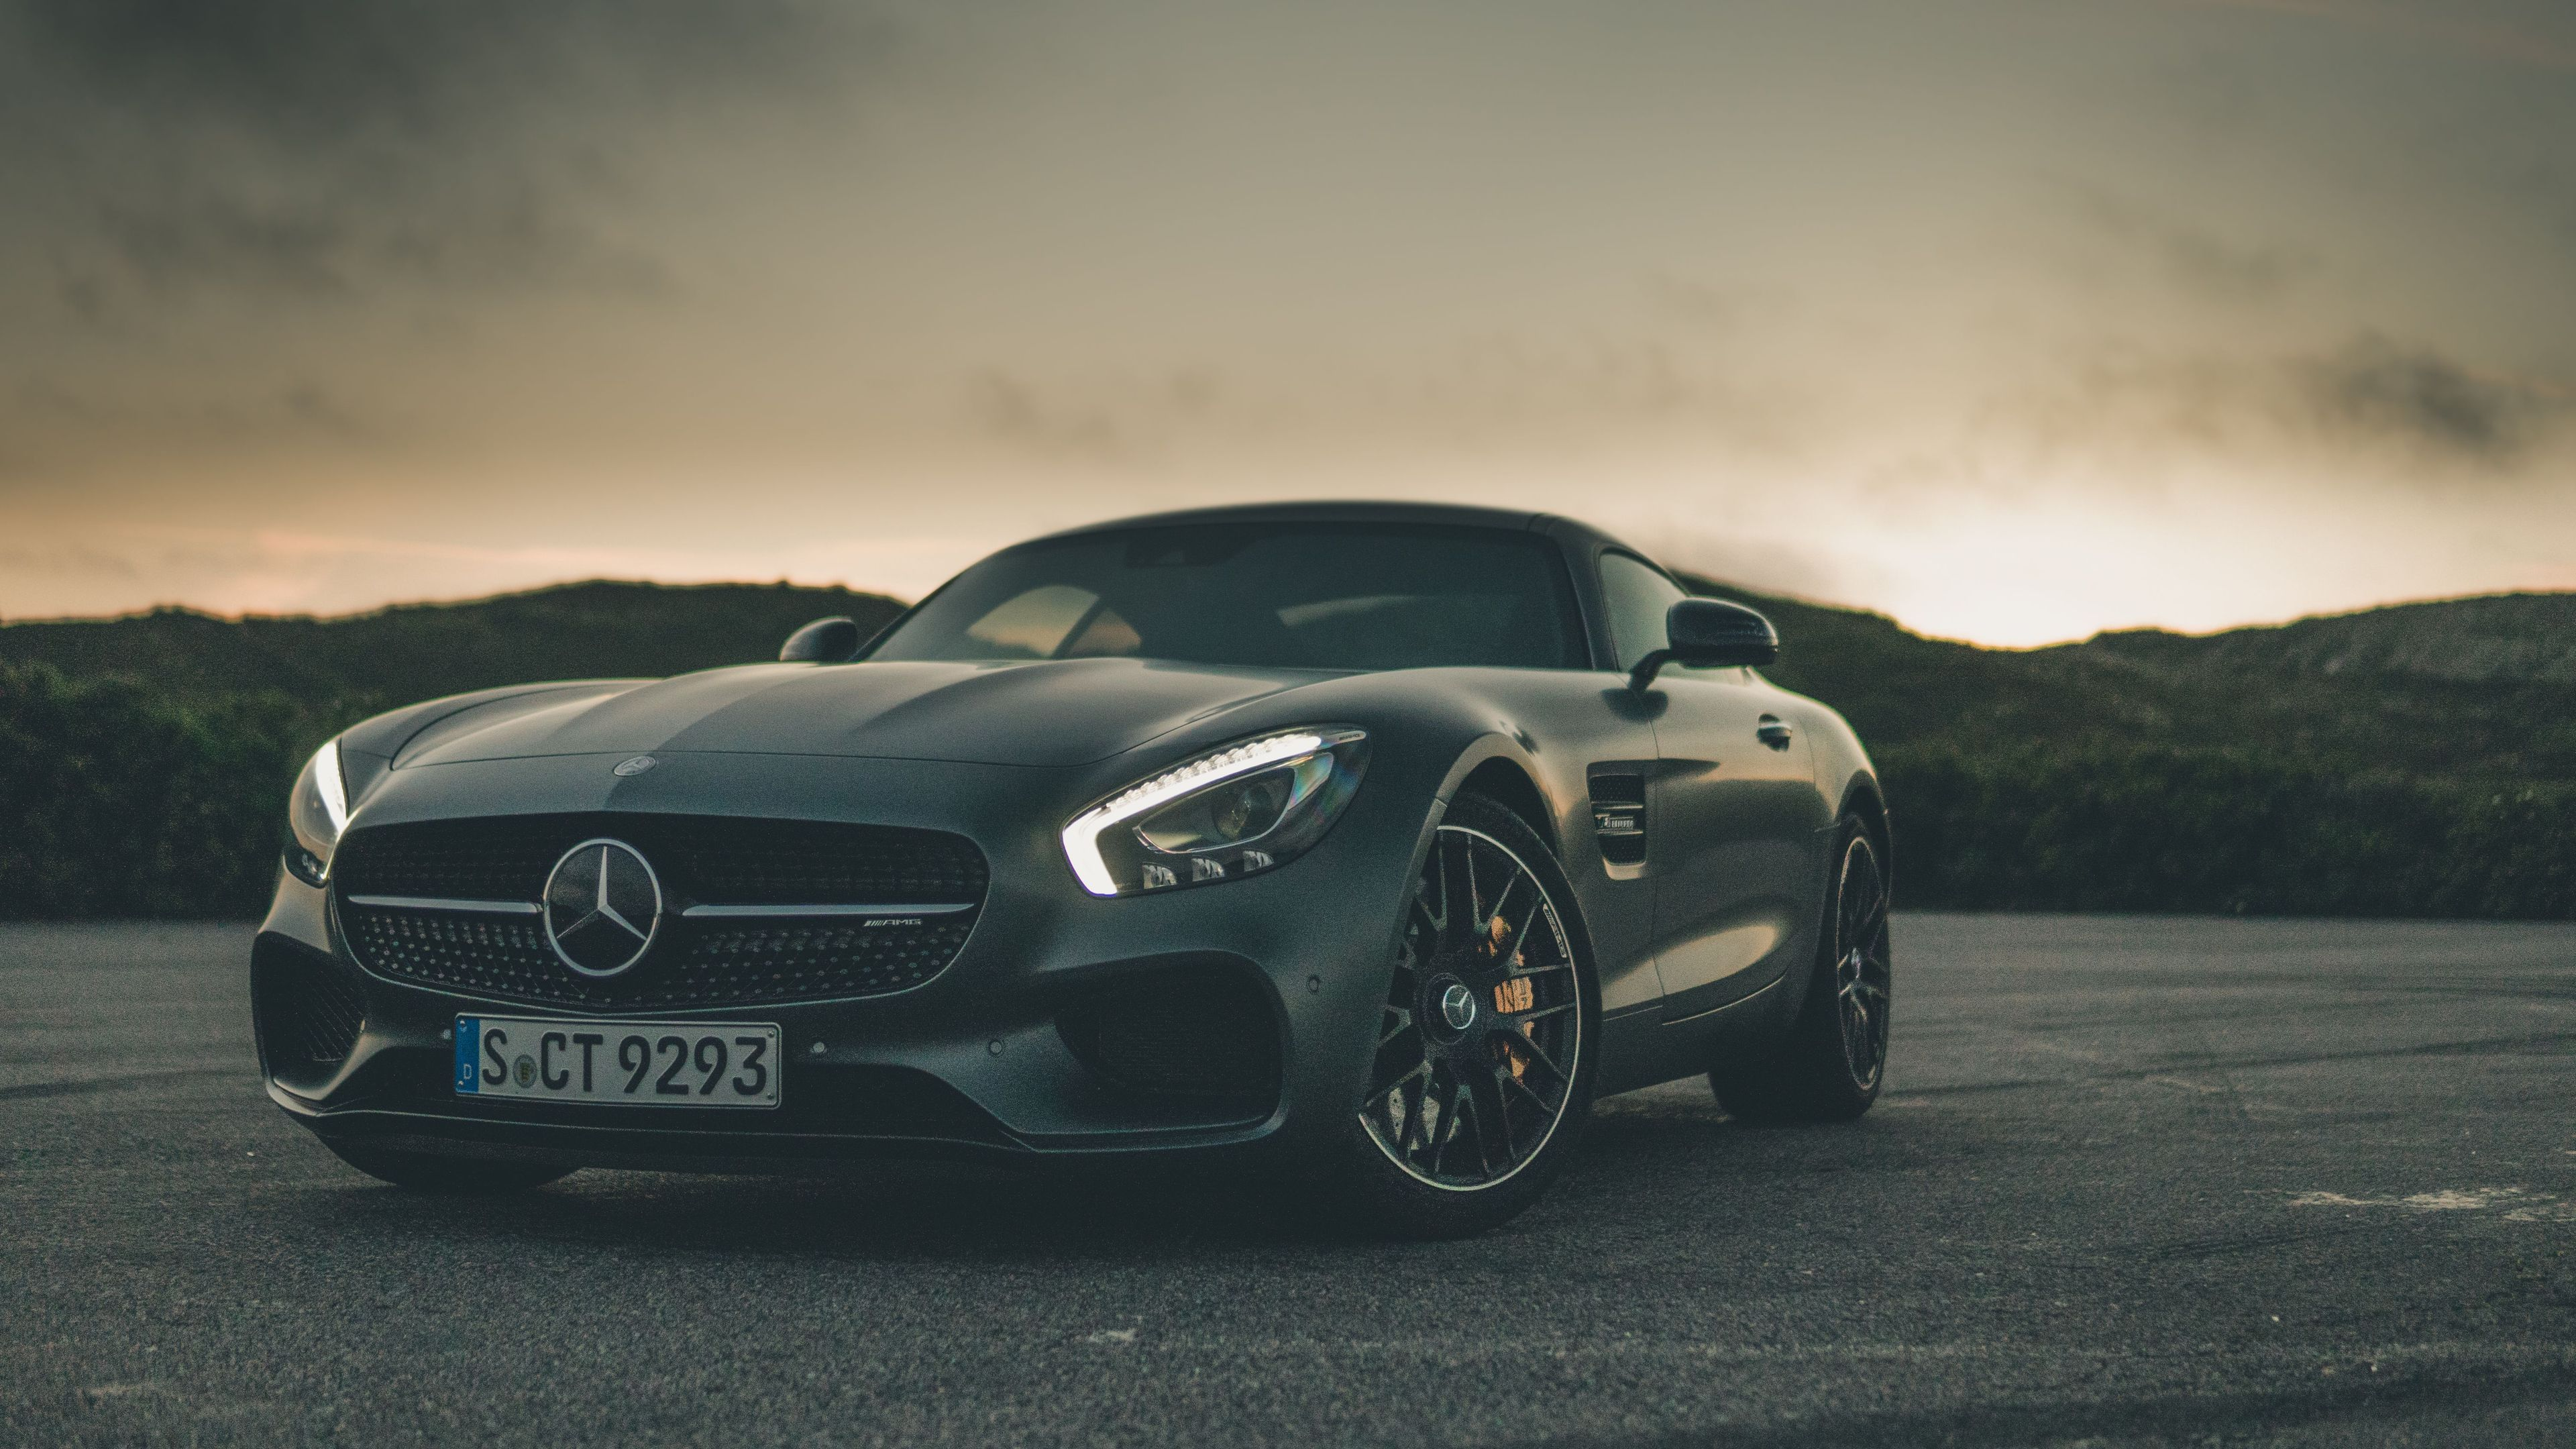 Mercedes 4k Wallpapers Top Free Mercedes 4k Backgrounds Images, Photos, Reviews